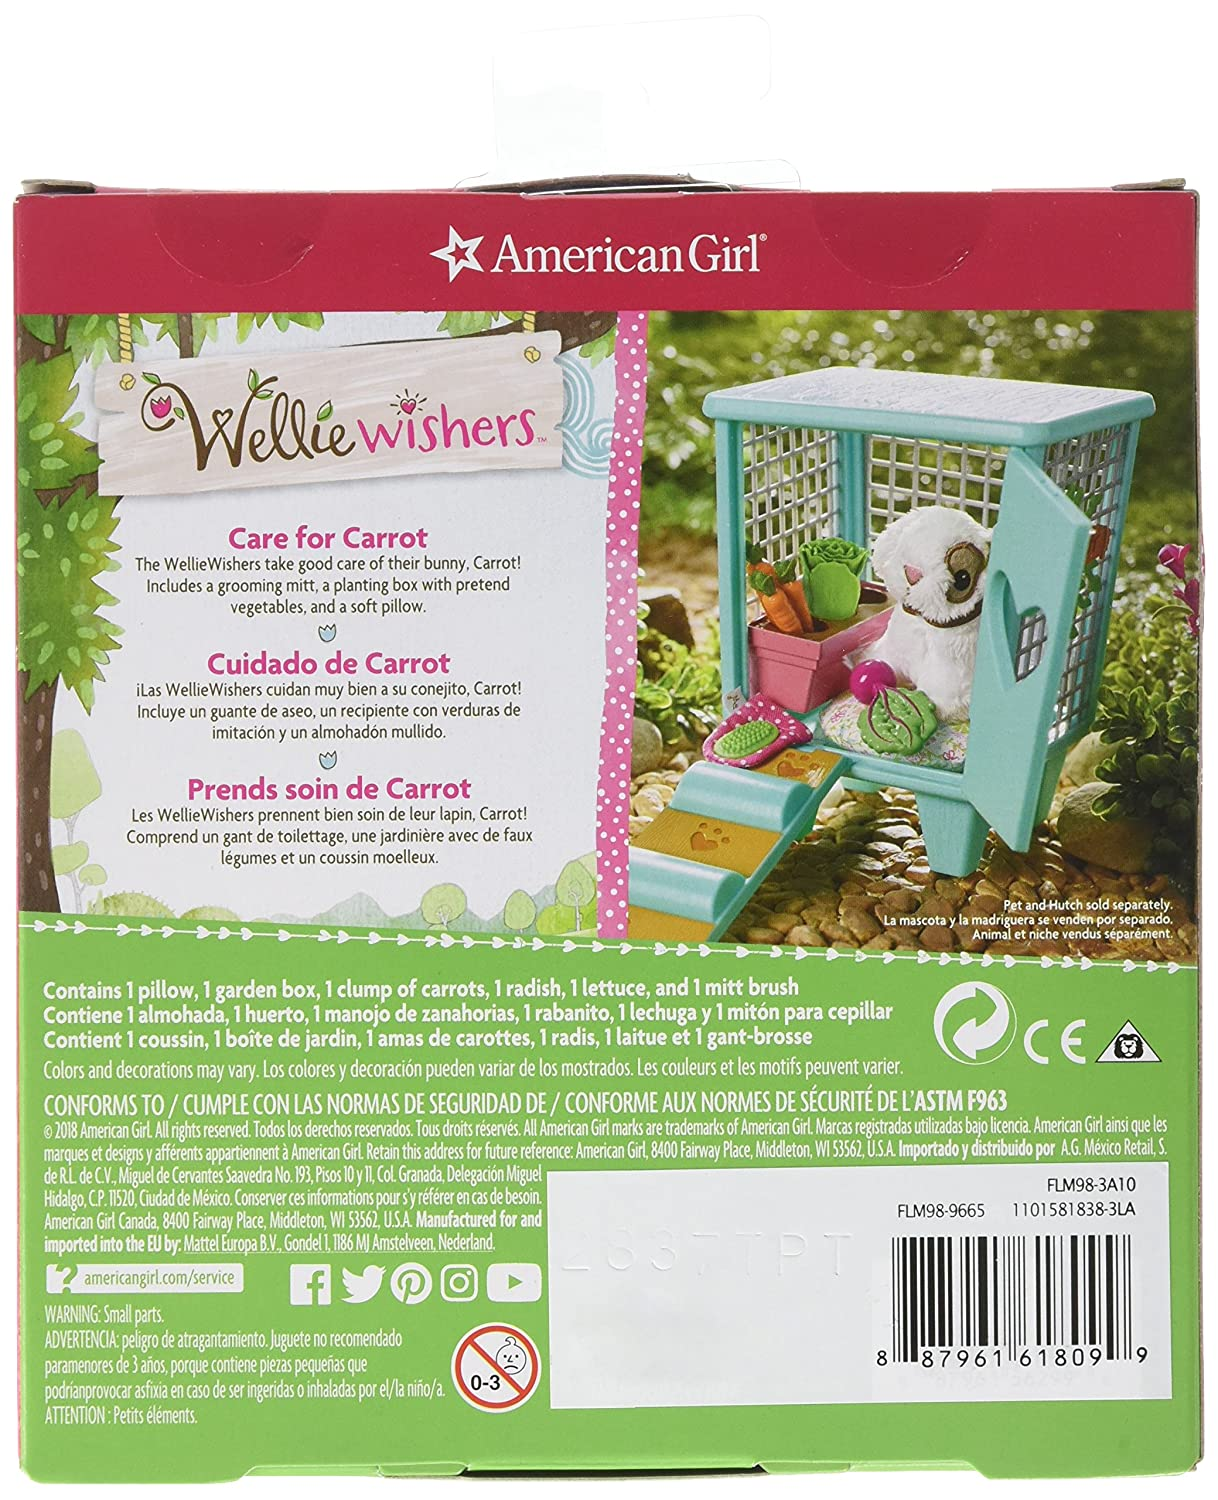 Amazon.com: American Girl Welliewishers Carrots Hutch Accessories Doll Accessories: Toys & Games